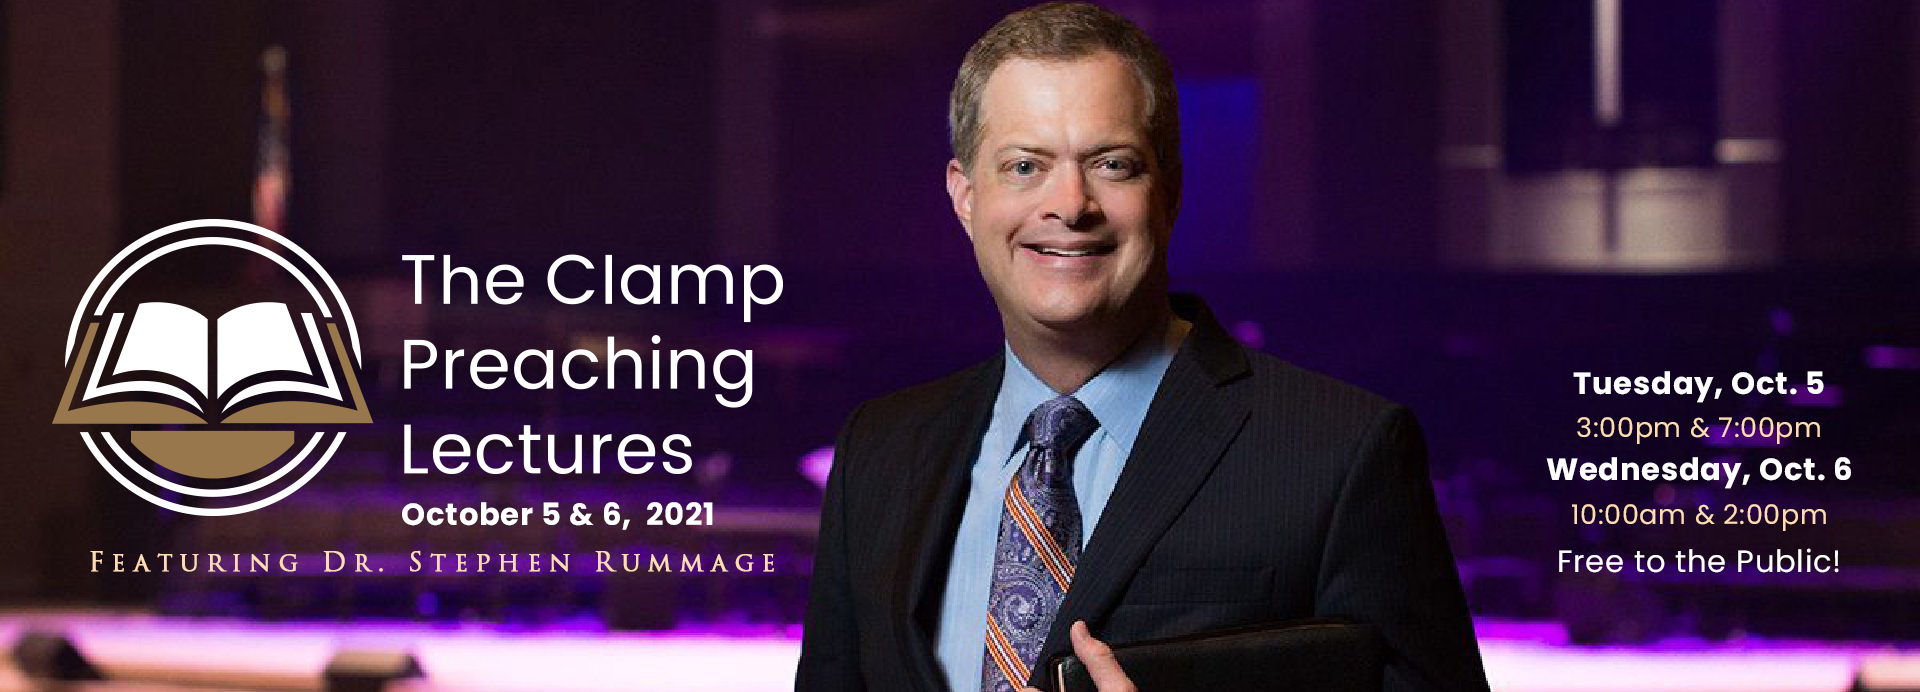 The Clamp Preaching Lectures with Stephen Rummage